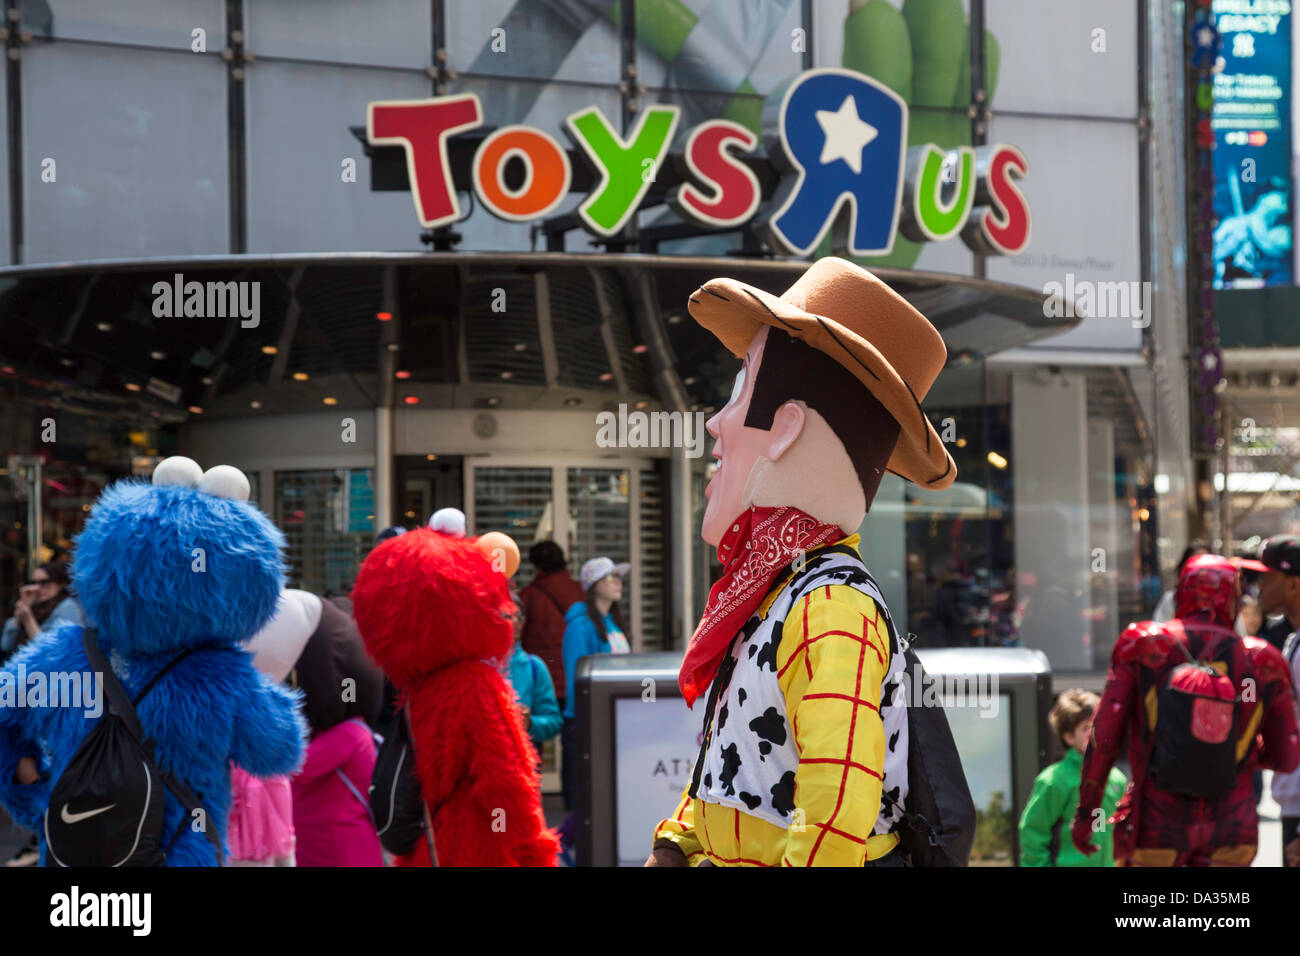 Toys R Us Cartoon Characters : Cartoon characters in front of toys r us times square